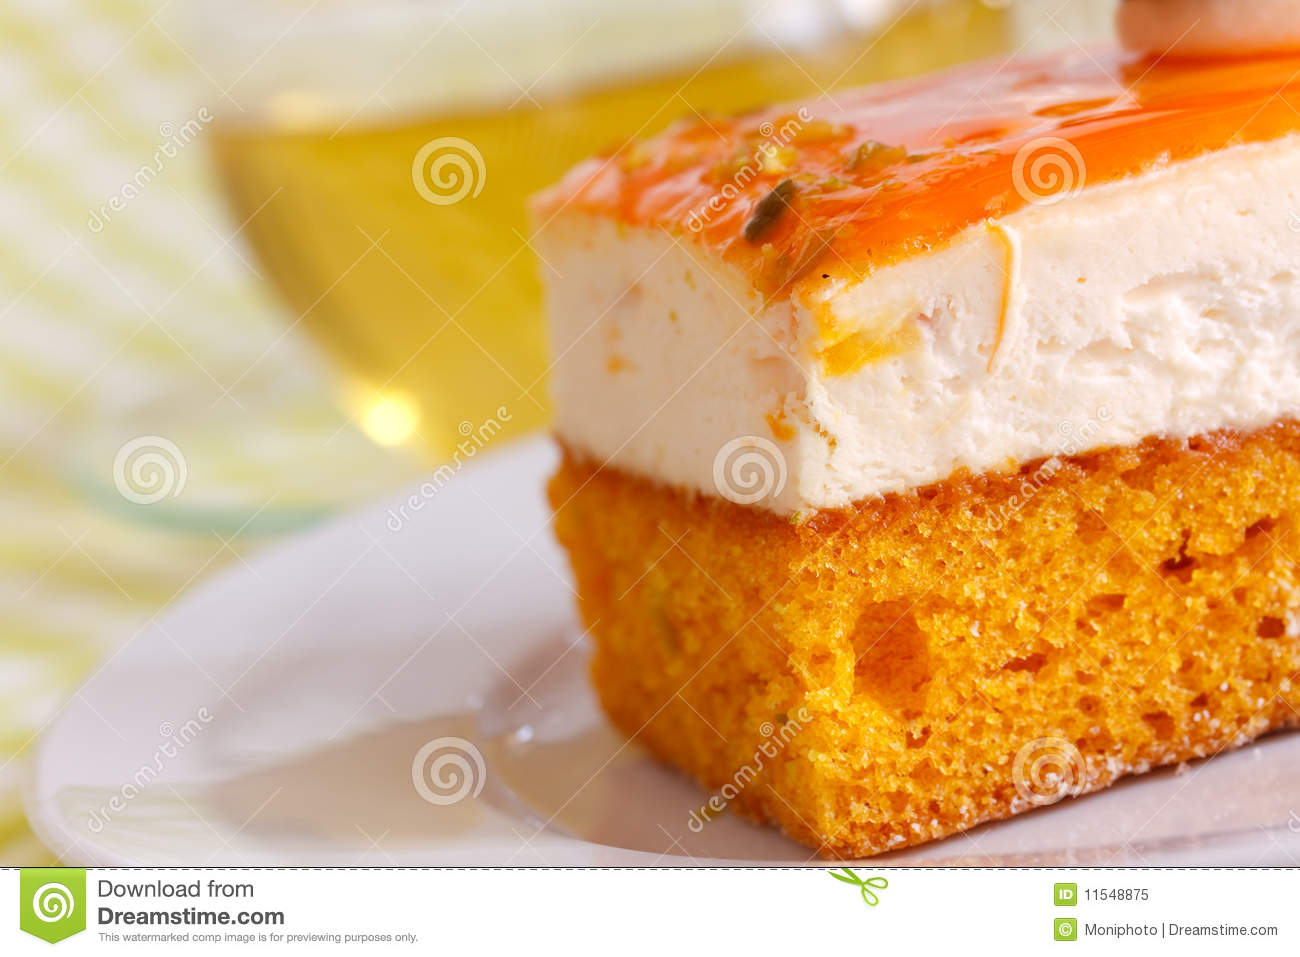 Orange Cream Cake With Cream Royalty Free Stock Photo - Image ...